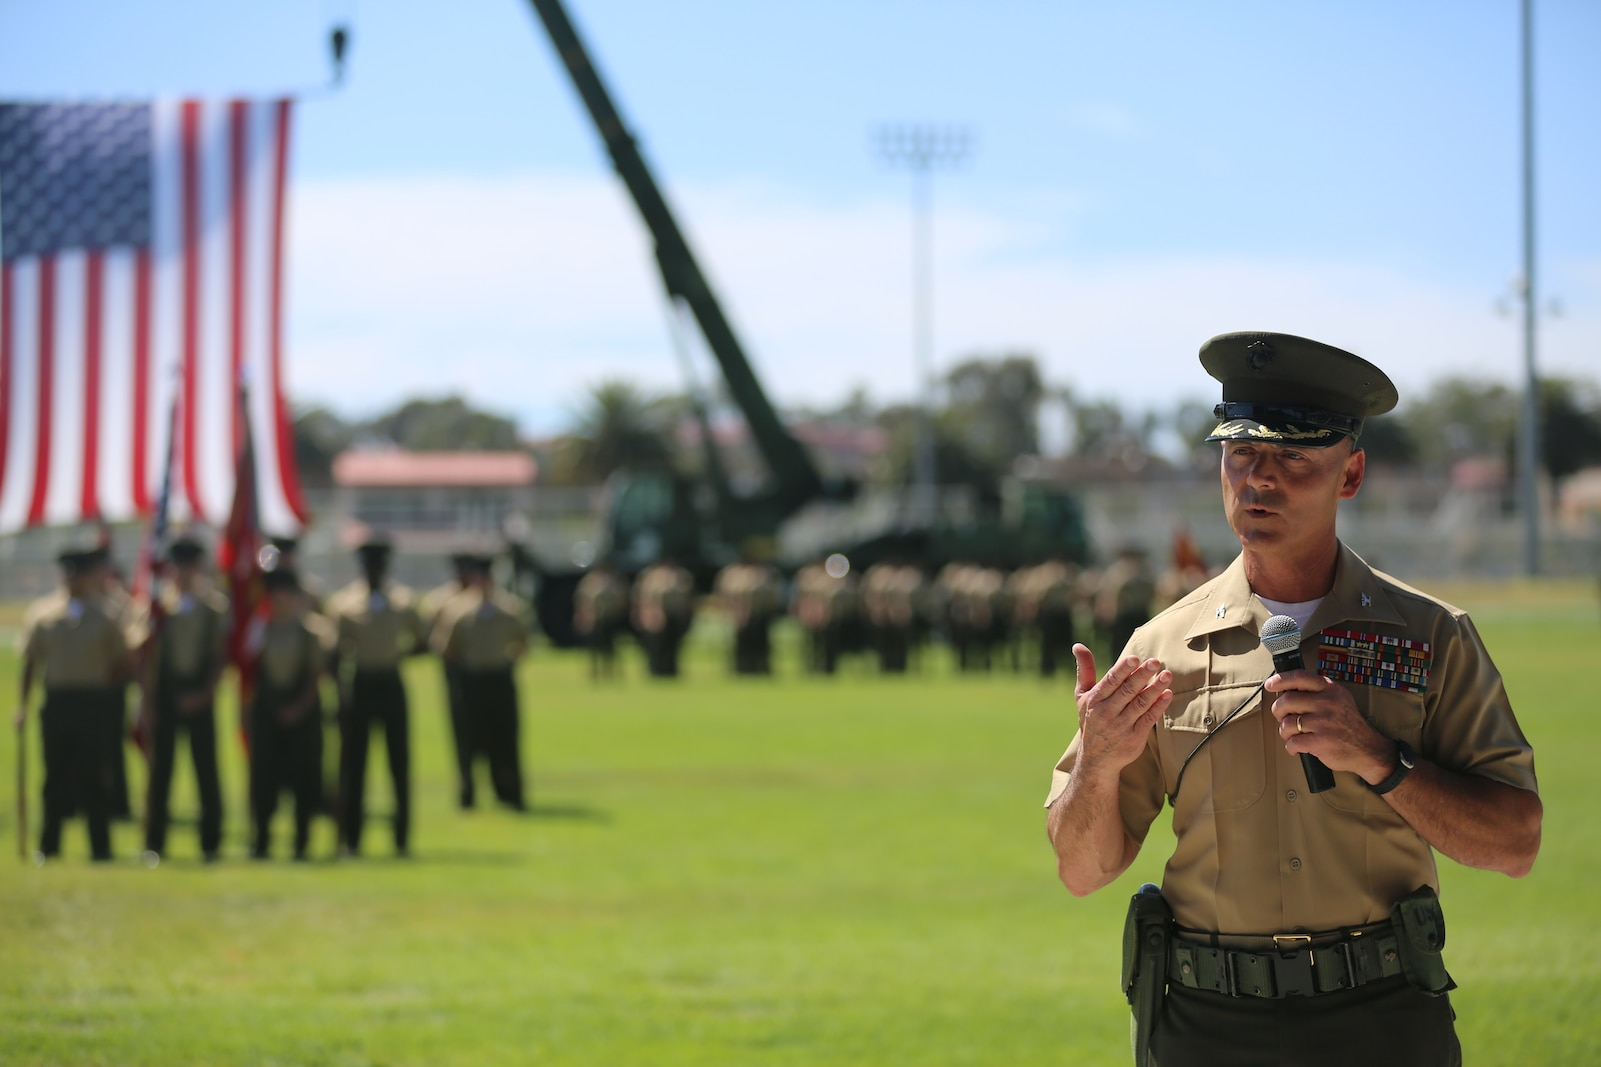 U.S. Marine Corps Col. Phillip N. Frietze, on coming commanding officer, Headquarters Regiment, 1st Marine Logistics Group, 1 Marine Expeditionary Force, addresses a crowd during the Change of Command Ceremony for Headquarters Regiment aboard Camp Pendleton Calif., May 1, 2015. The Change of Command Ceremony for Headquarters Regiment showcased the passing of command from Col. Eric B. Kraft to Col. Phillip N. Frietze. (U.S. Marine Corps Photo by Cpl. Rodion Zabolotniy, combat camera/ released)